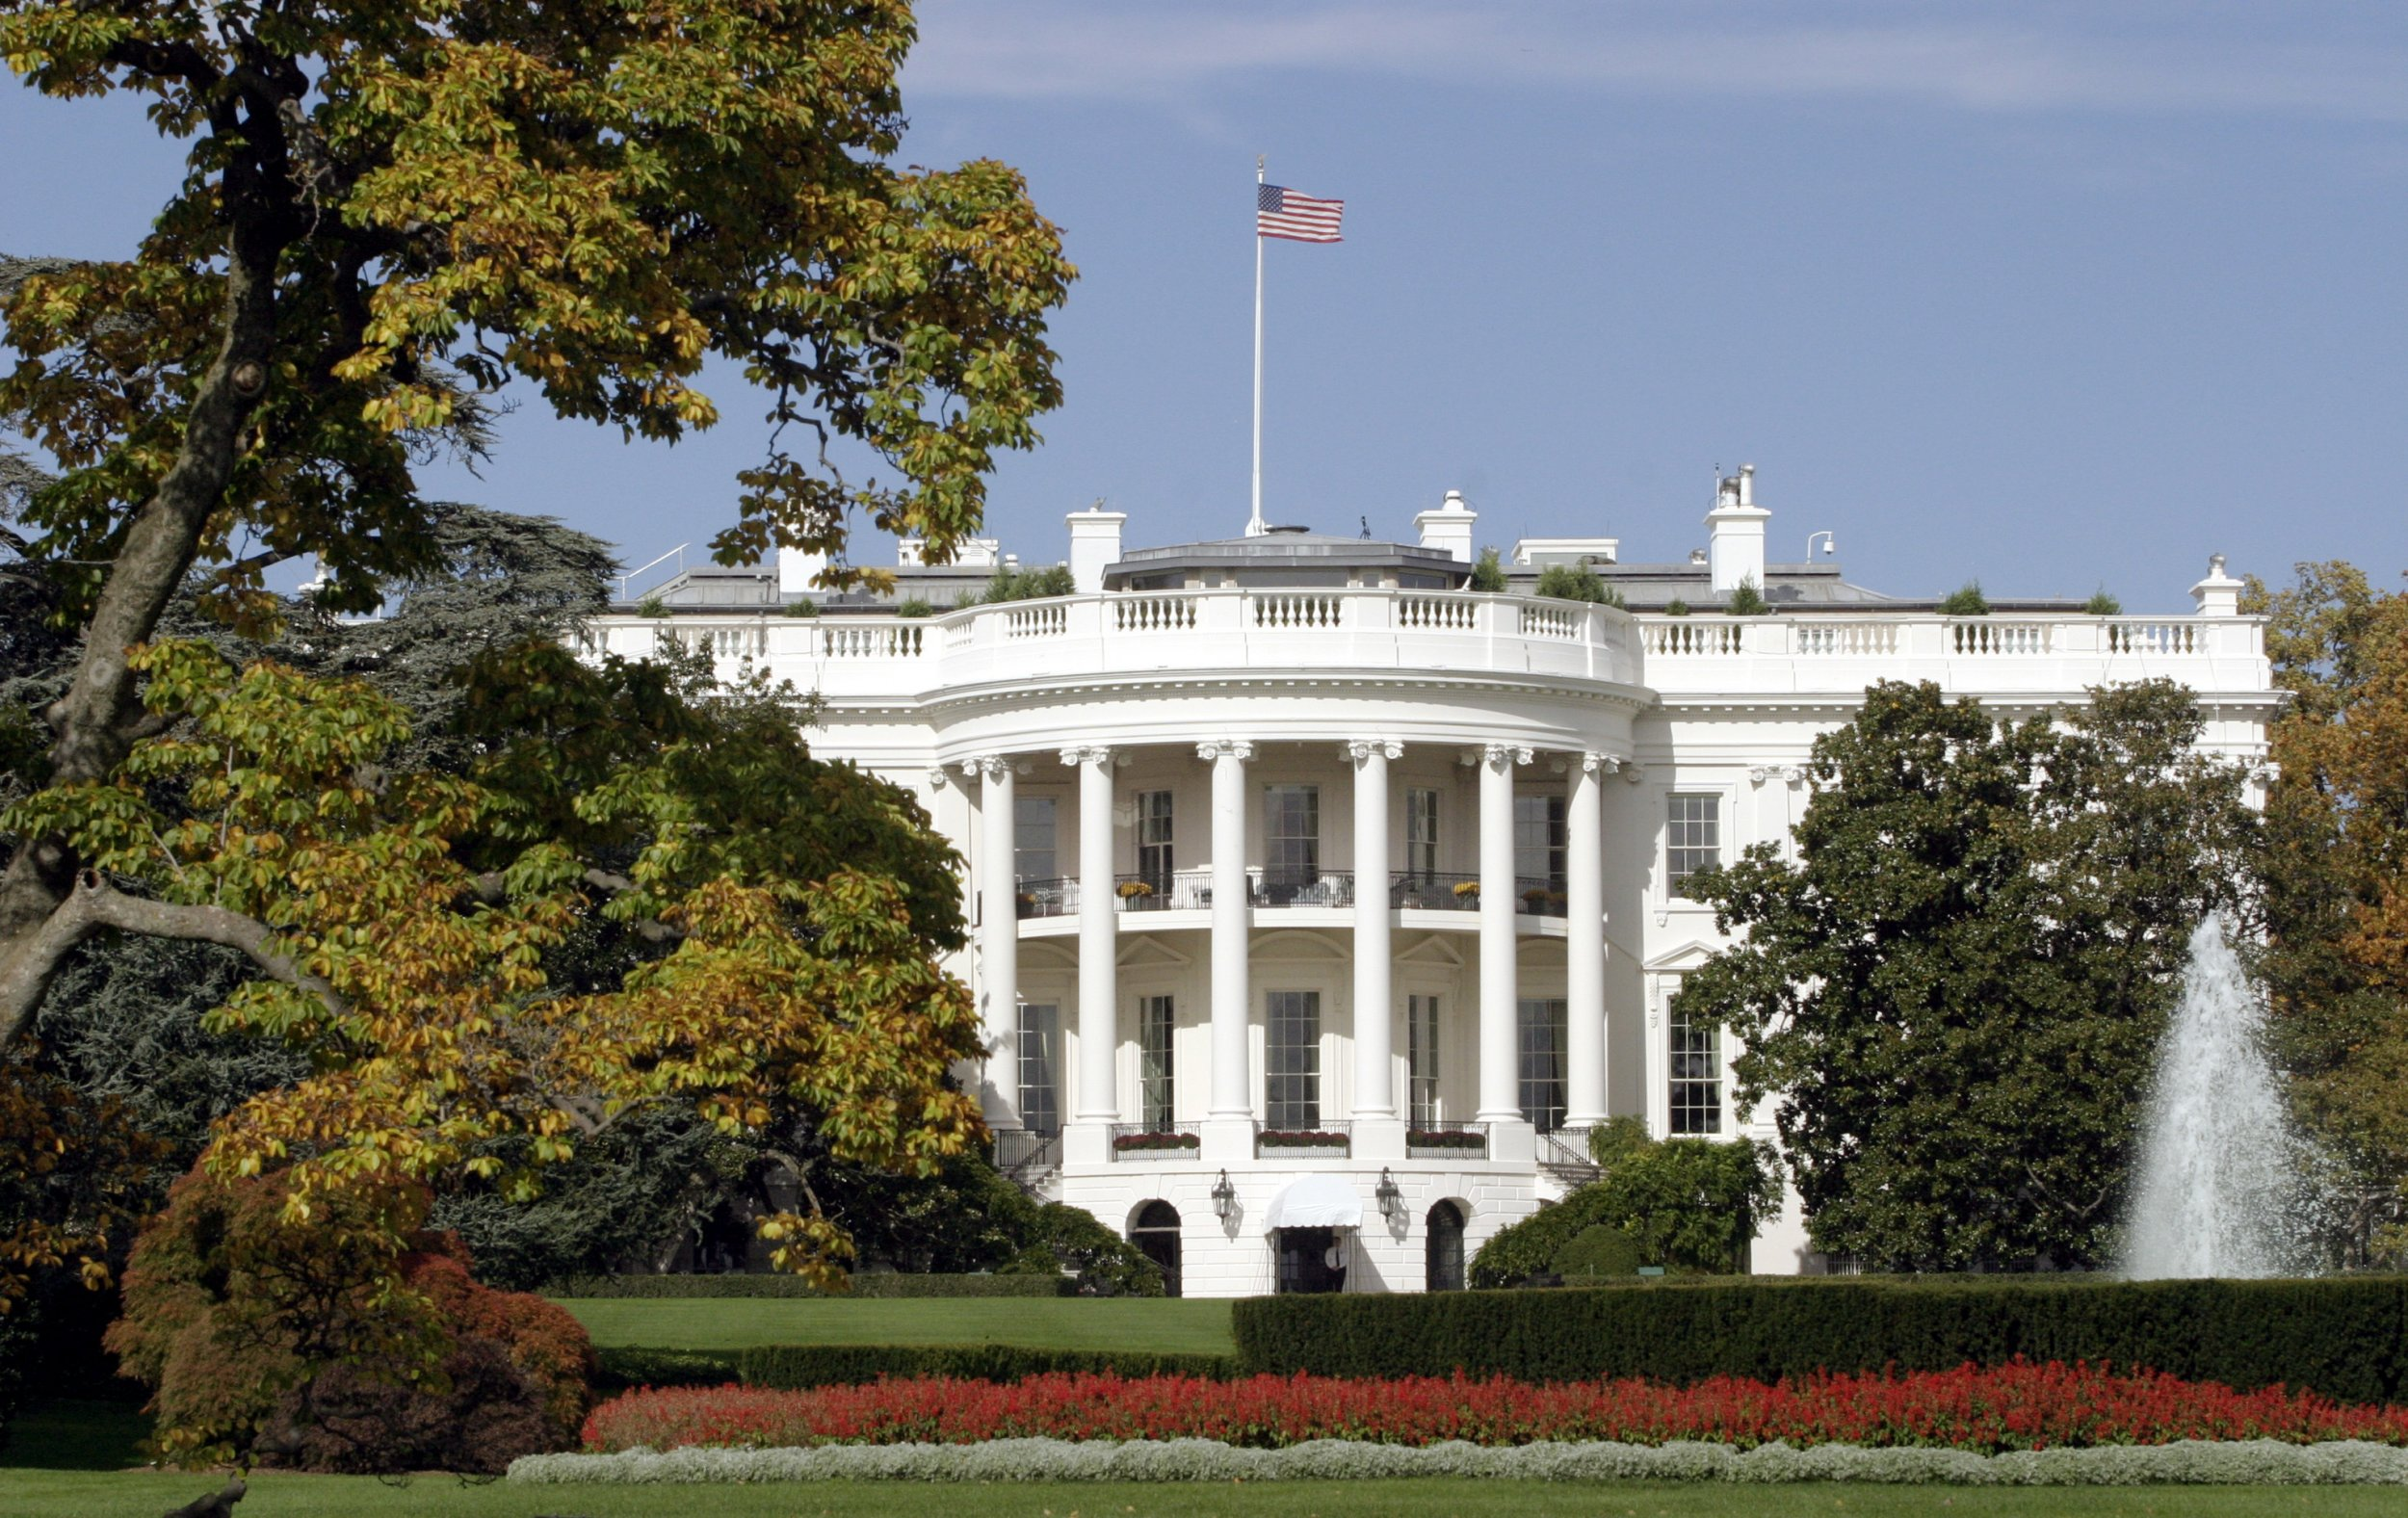 Report russians hacked white house for The white housse